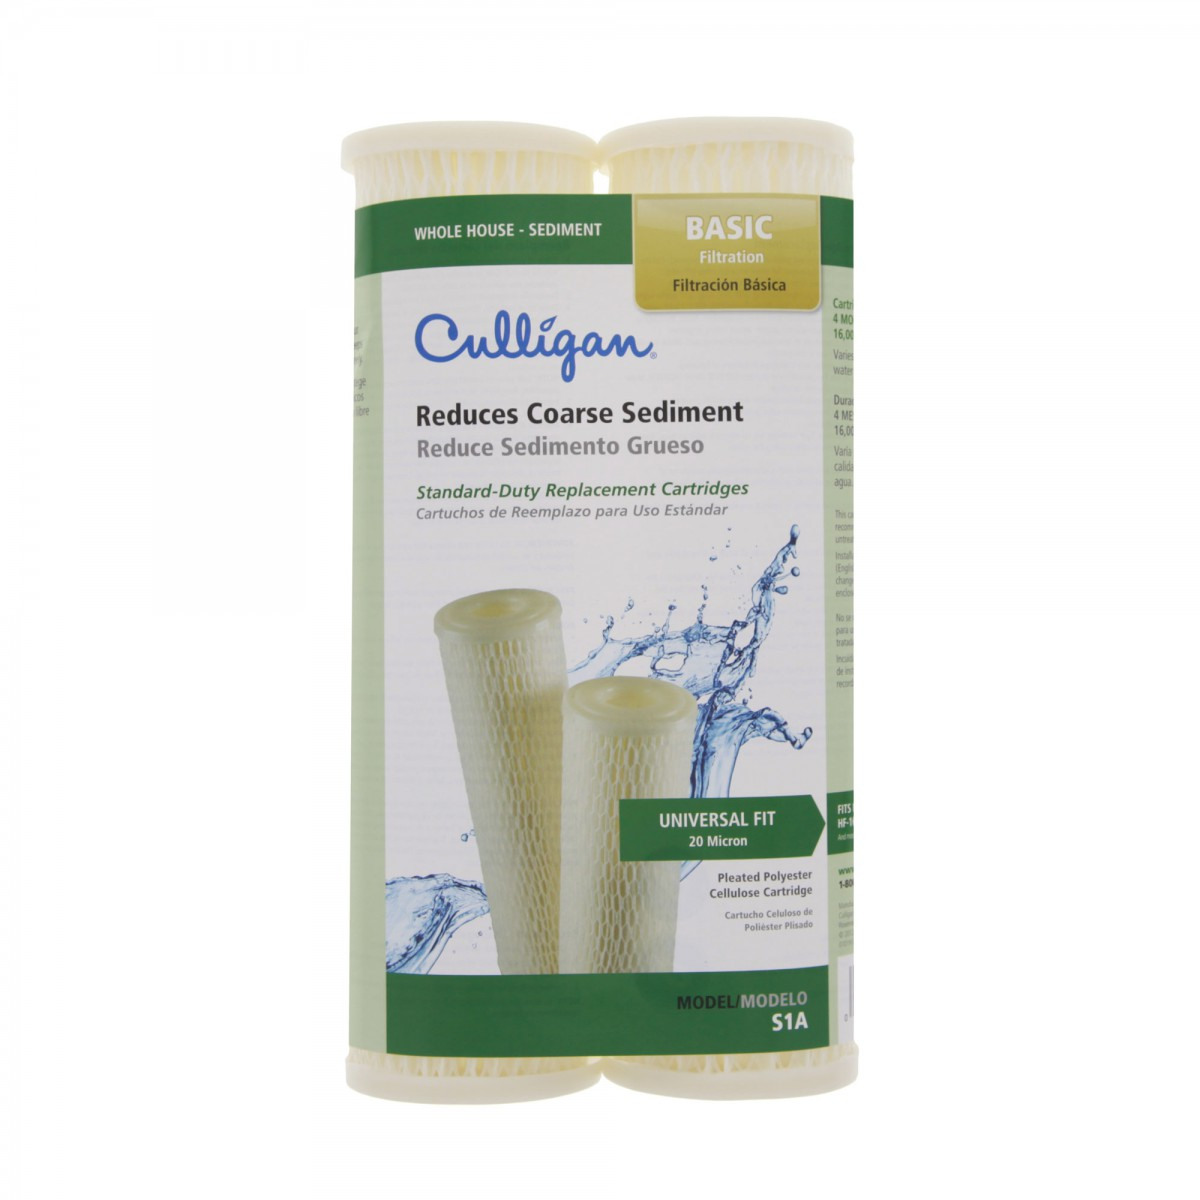 culligan s1a whole house water filter replacement cartridge 2pack level 2